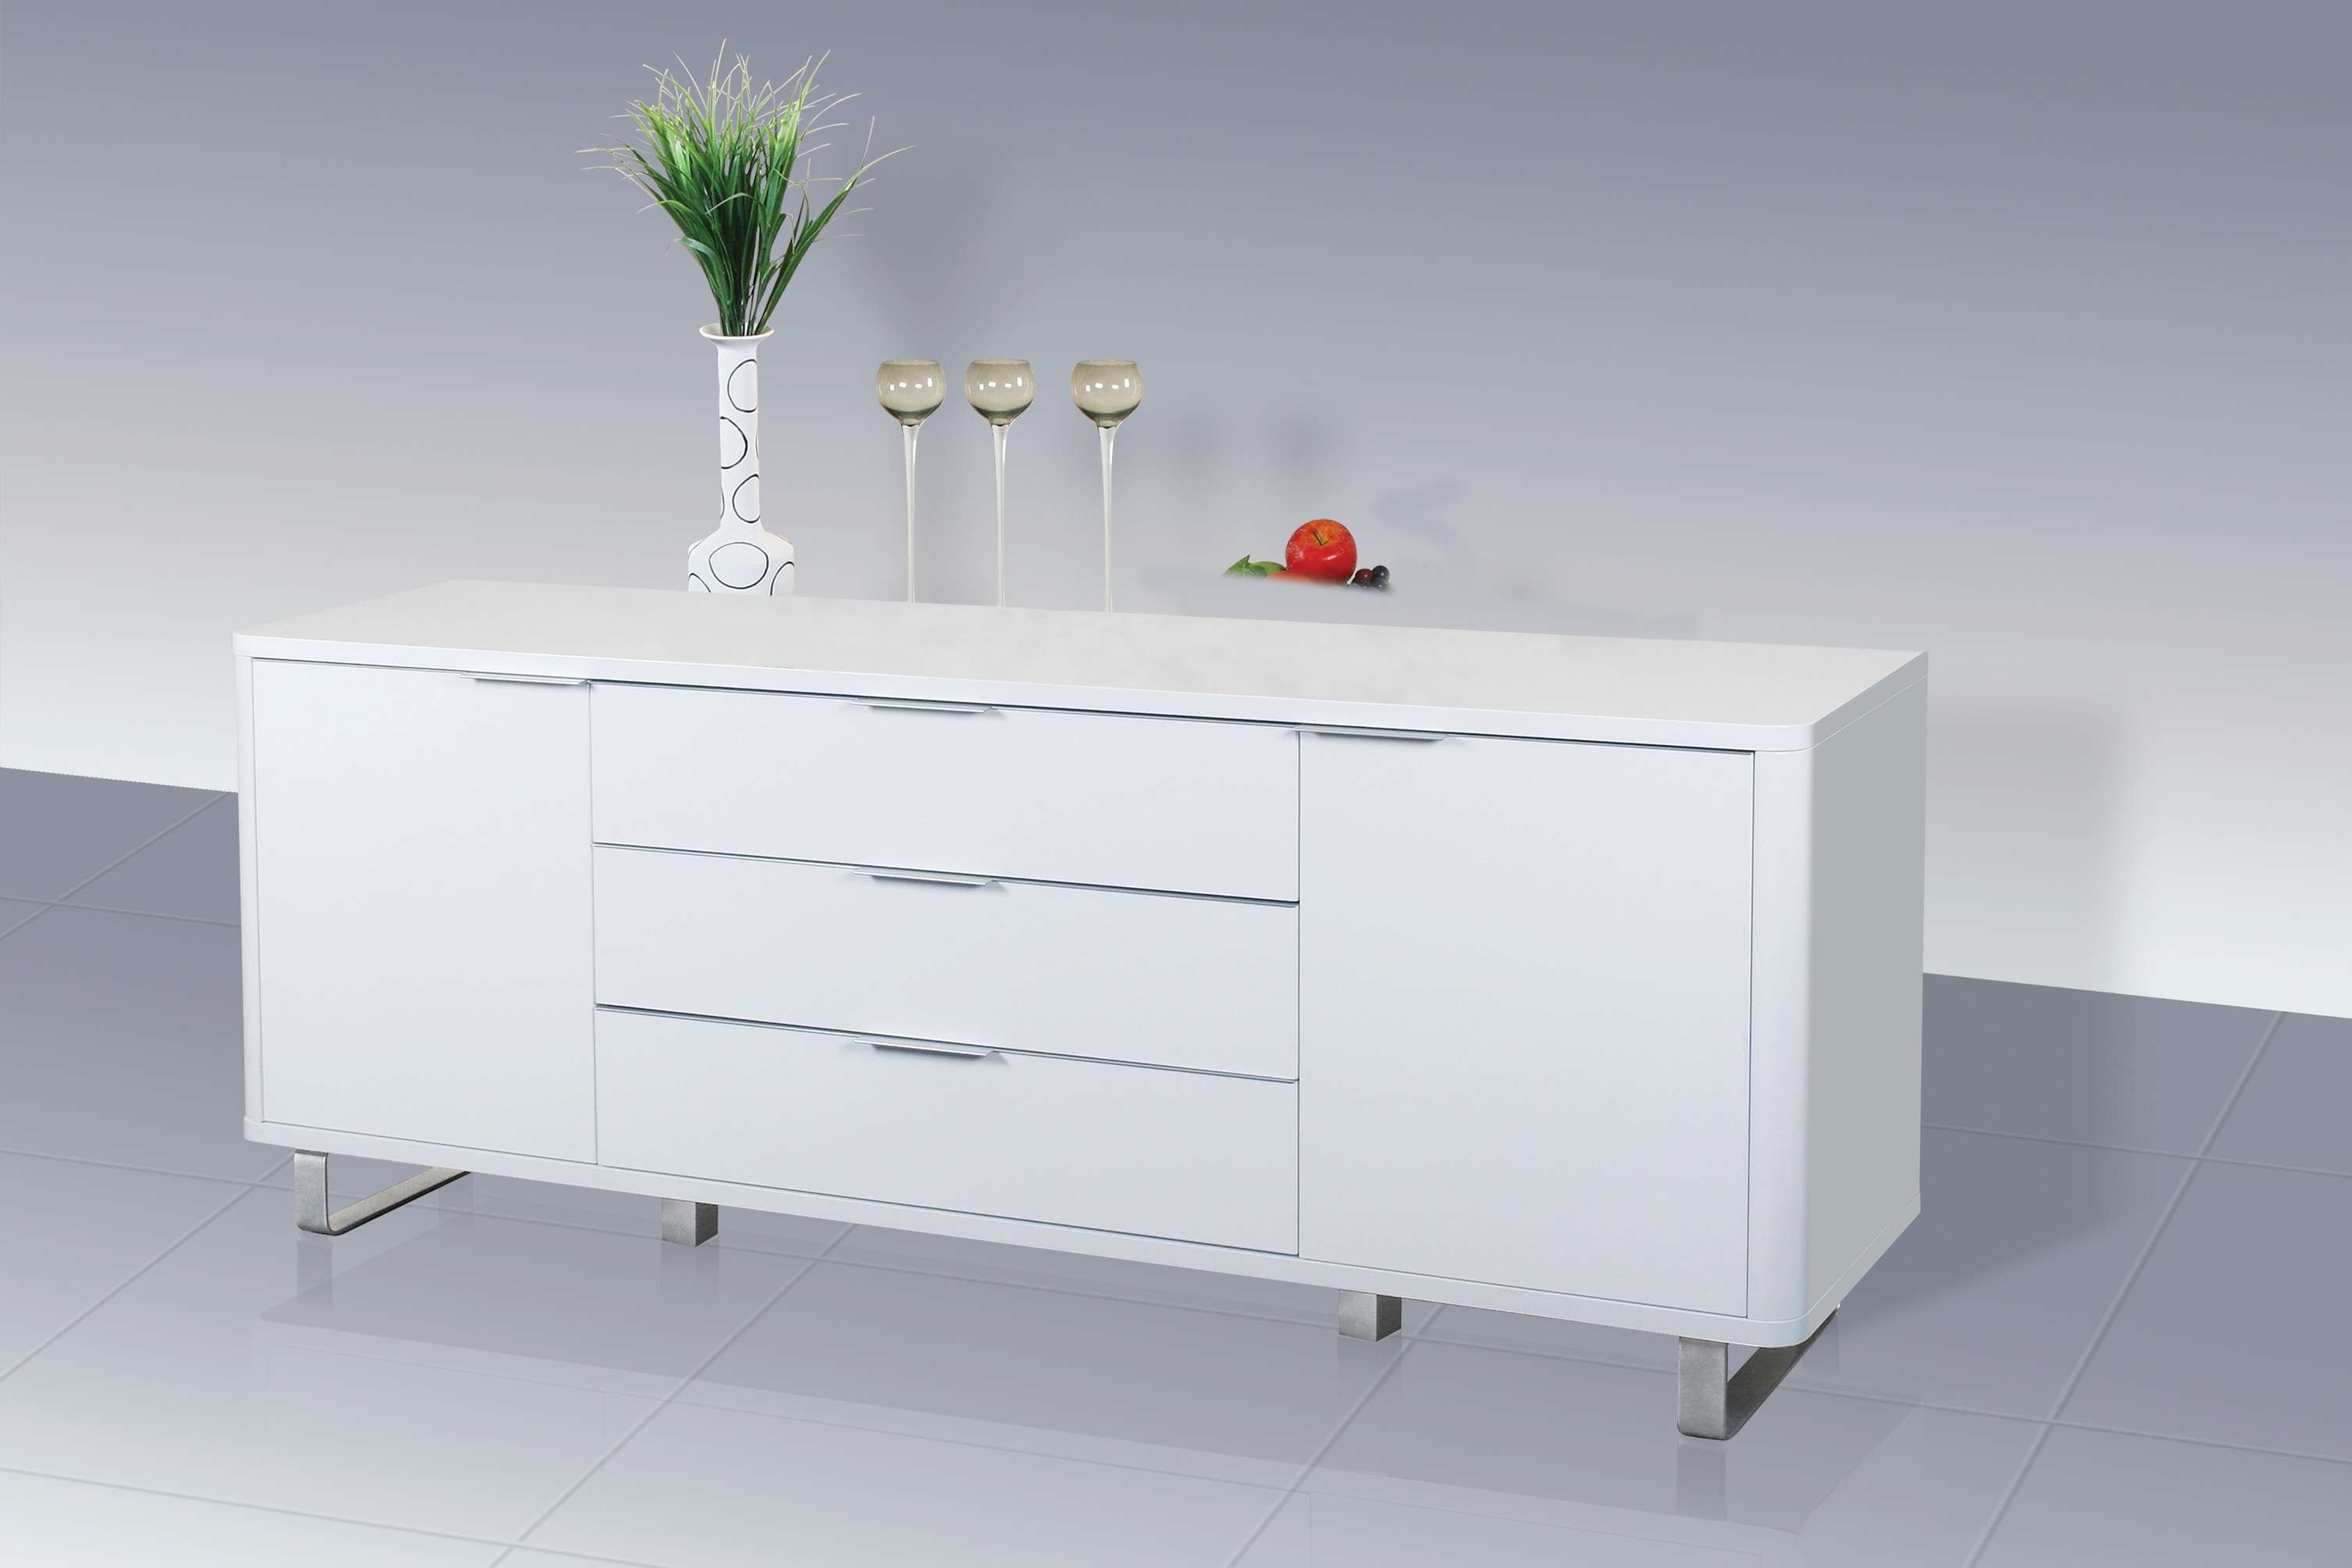 Amazing High Gloss Sideboard Uk – Buildsimplehome For Gloss Sideboards Furniture (View 7 of 20)